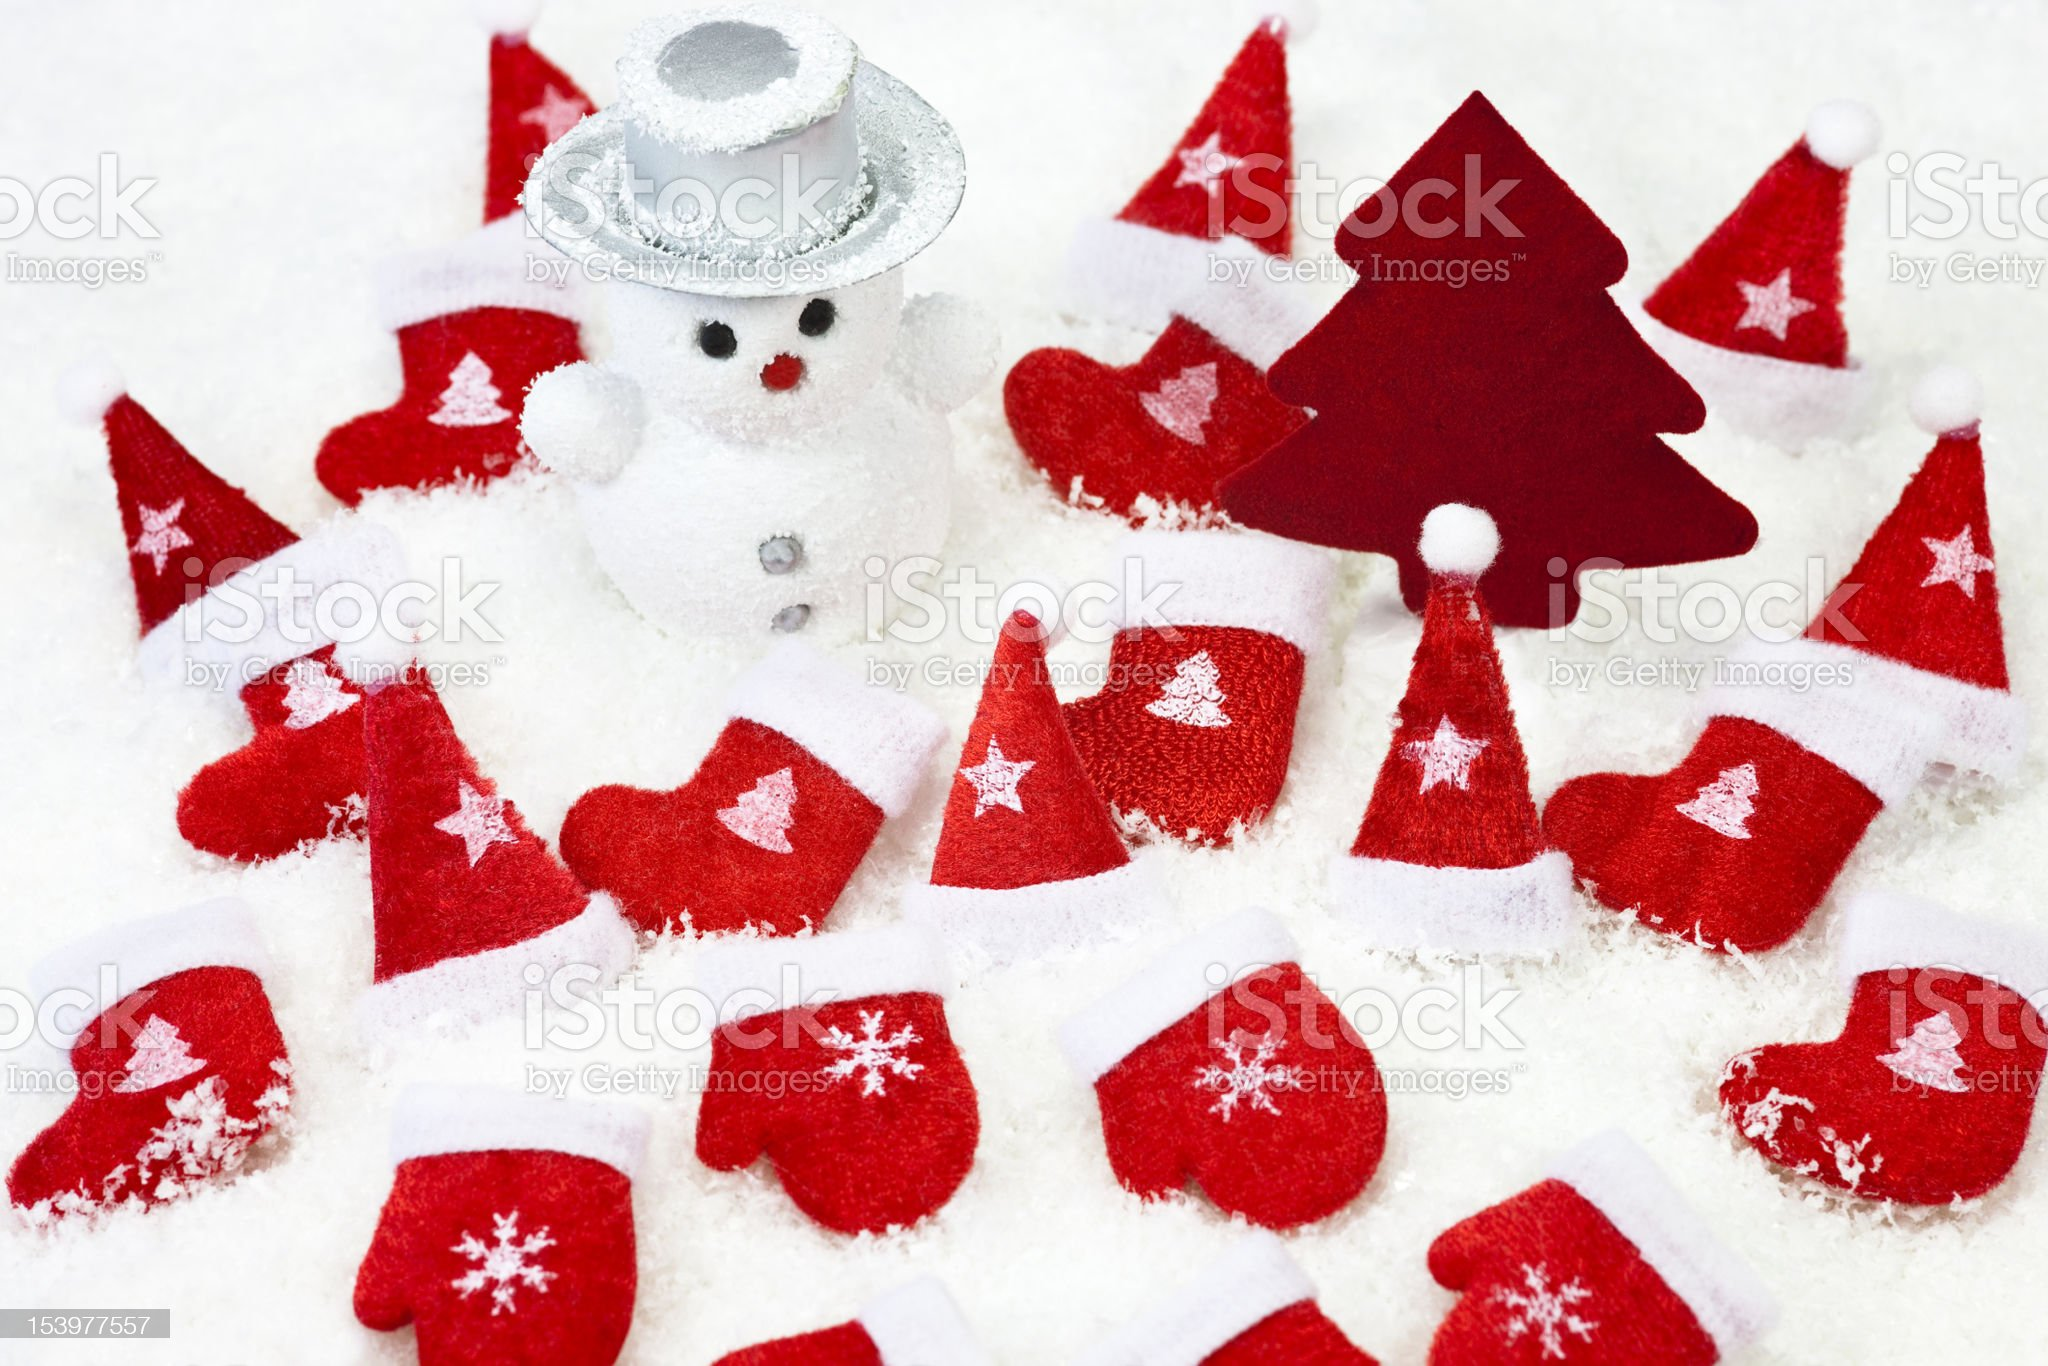 Christmas Decorations on the Snow royalty-free stock photo